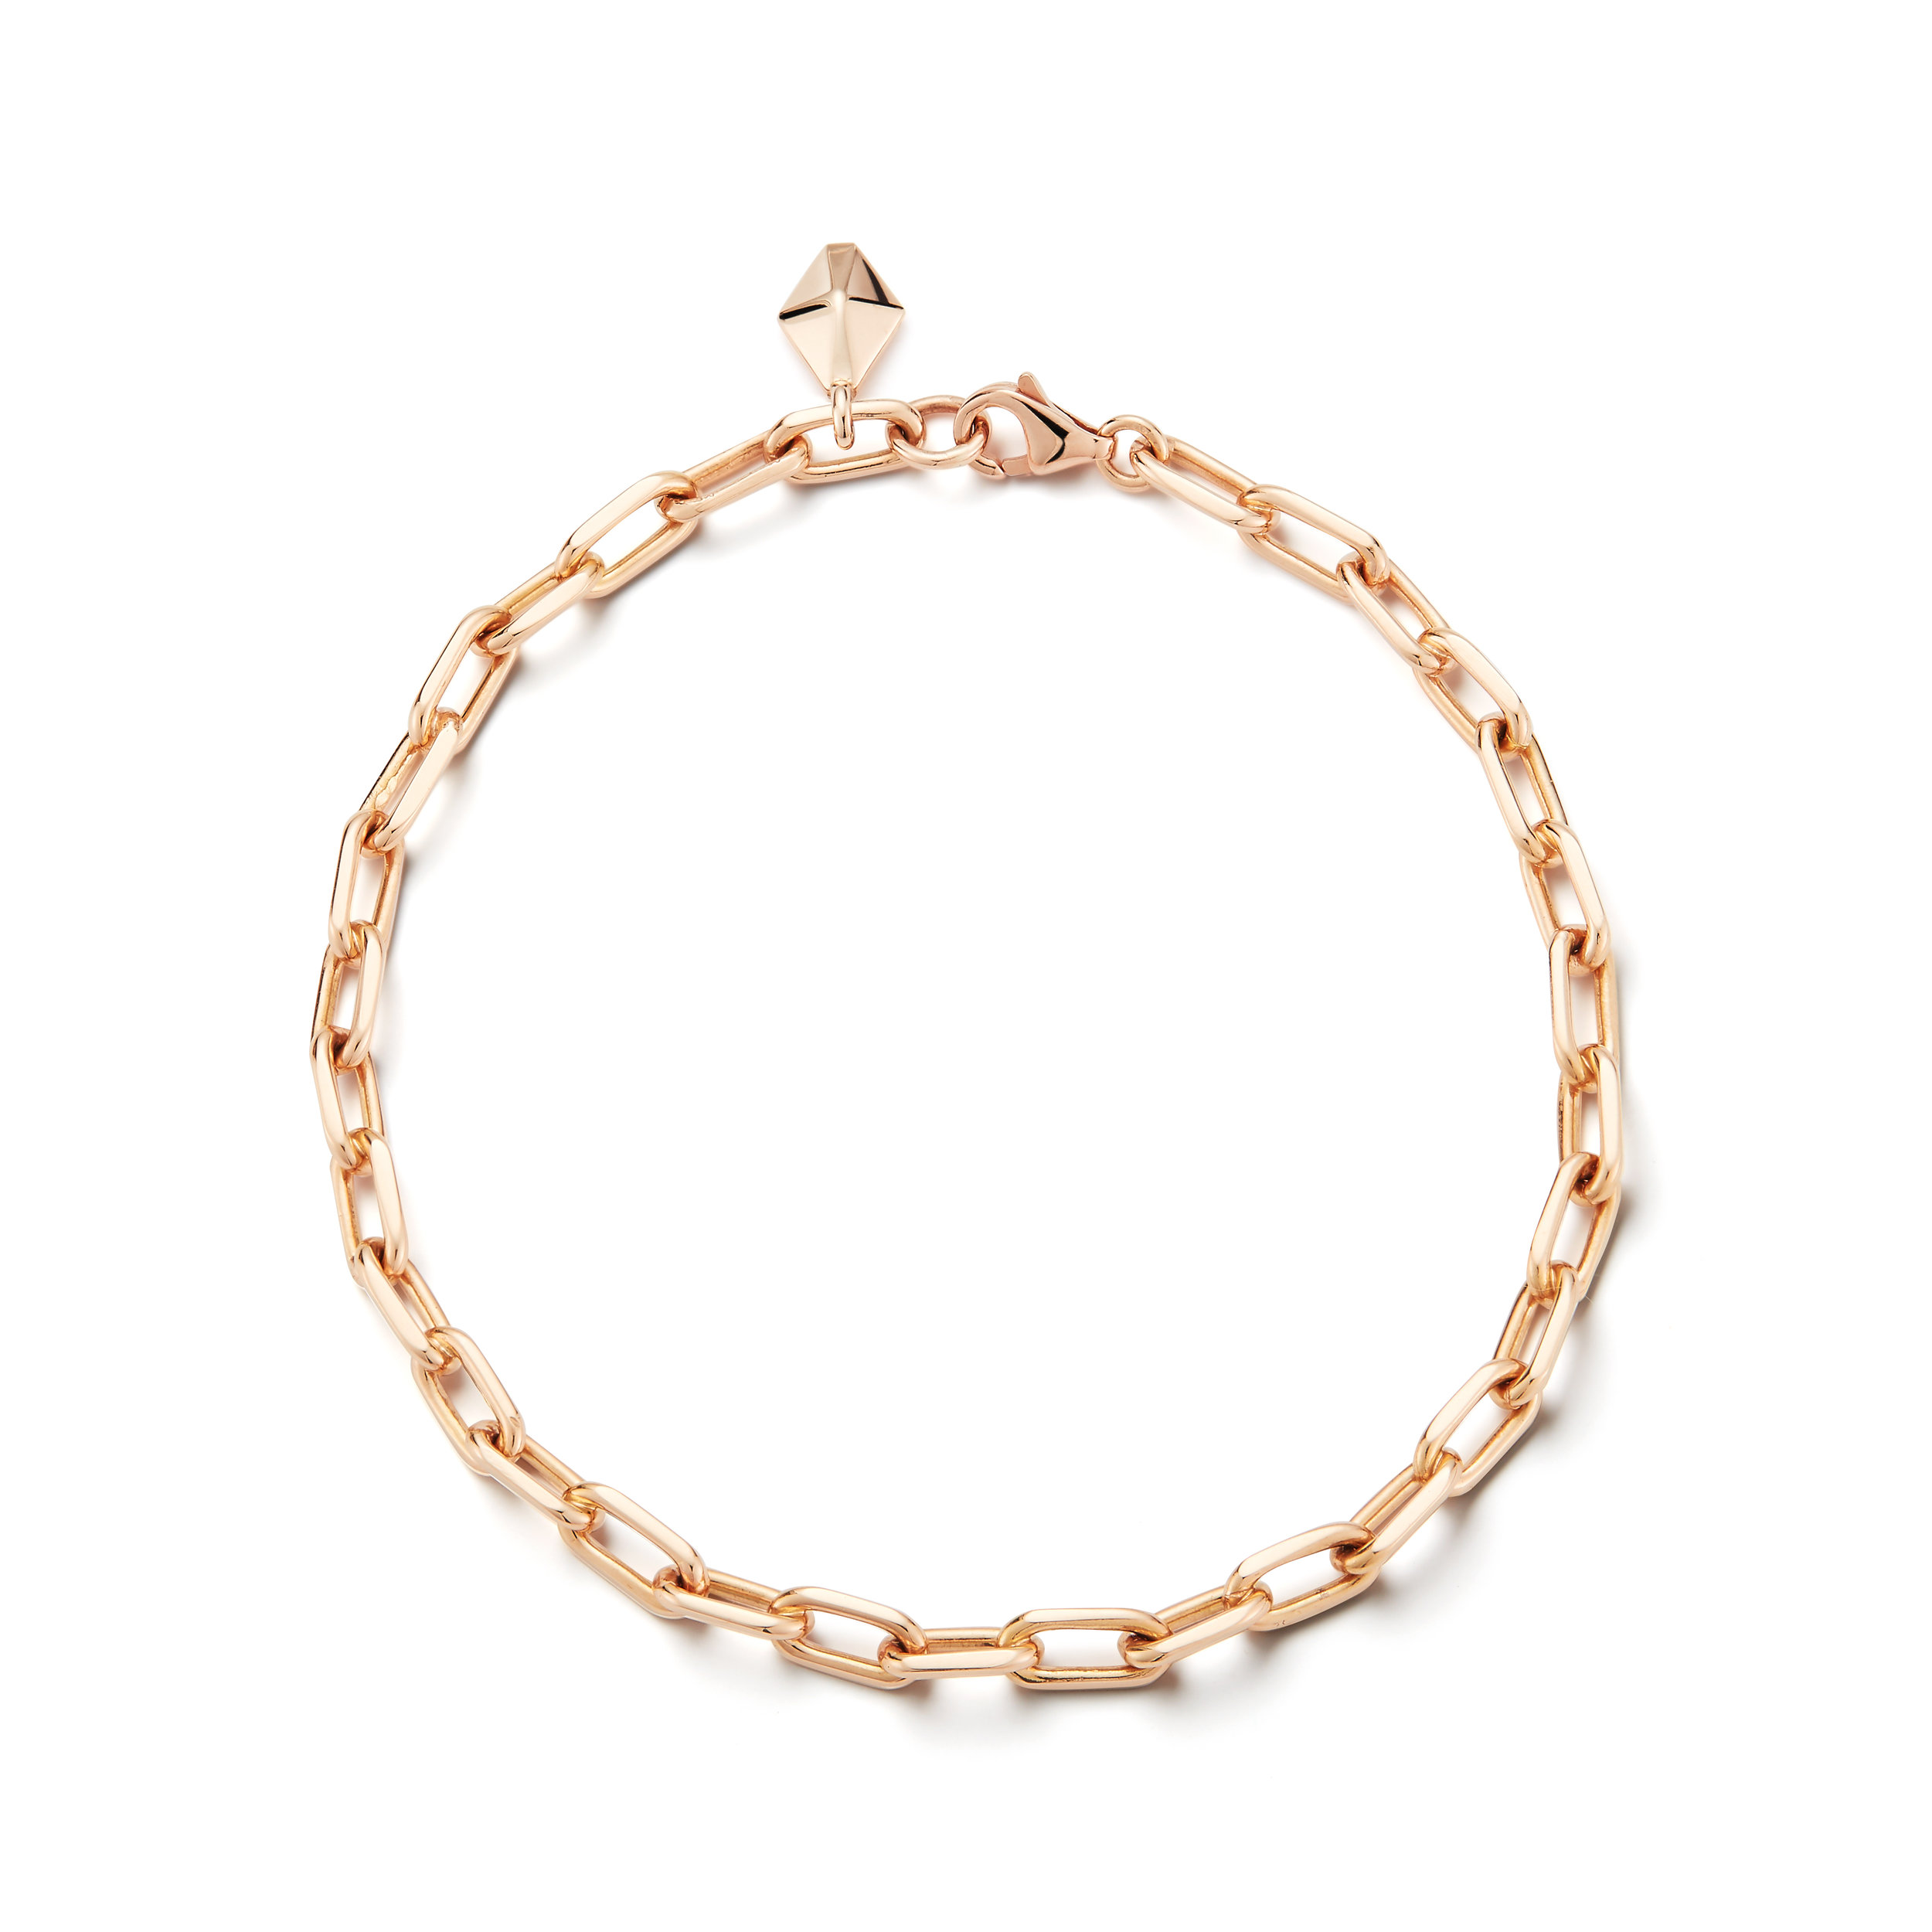 Walters Faith Saxon 18K Elongated Chain Link Bracelet ta3vASI